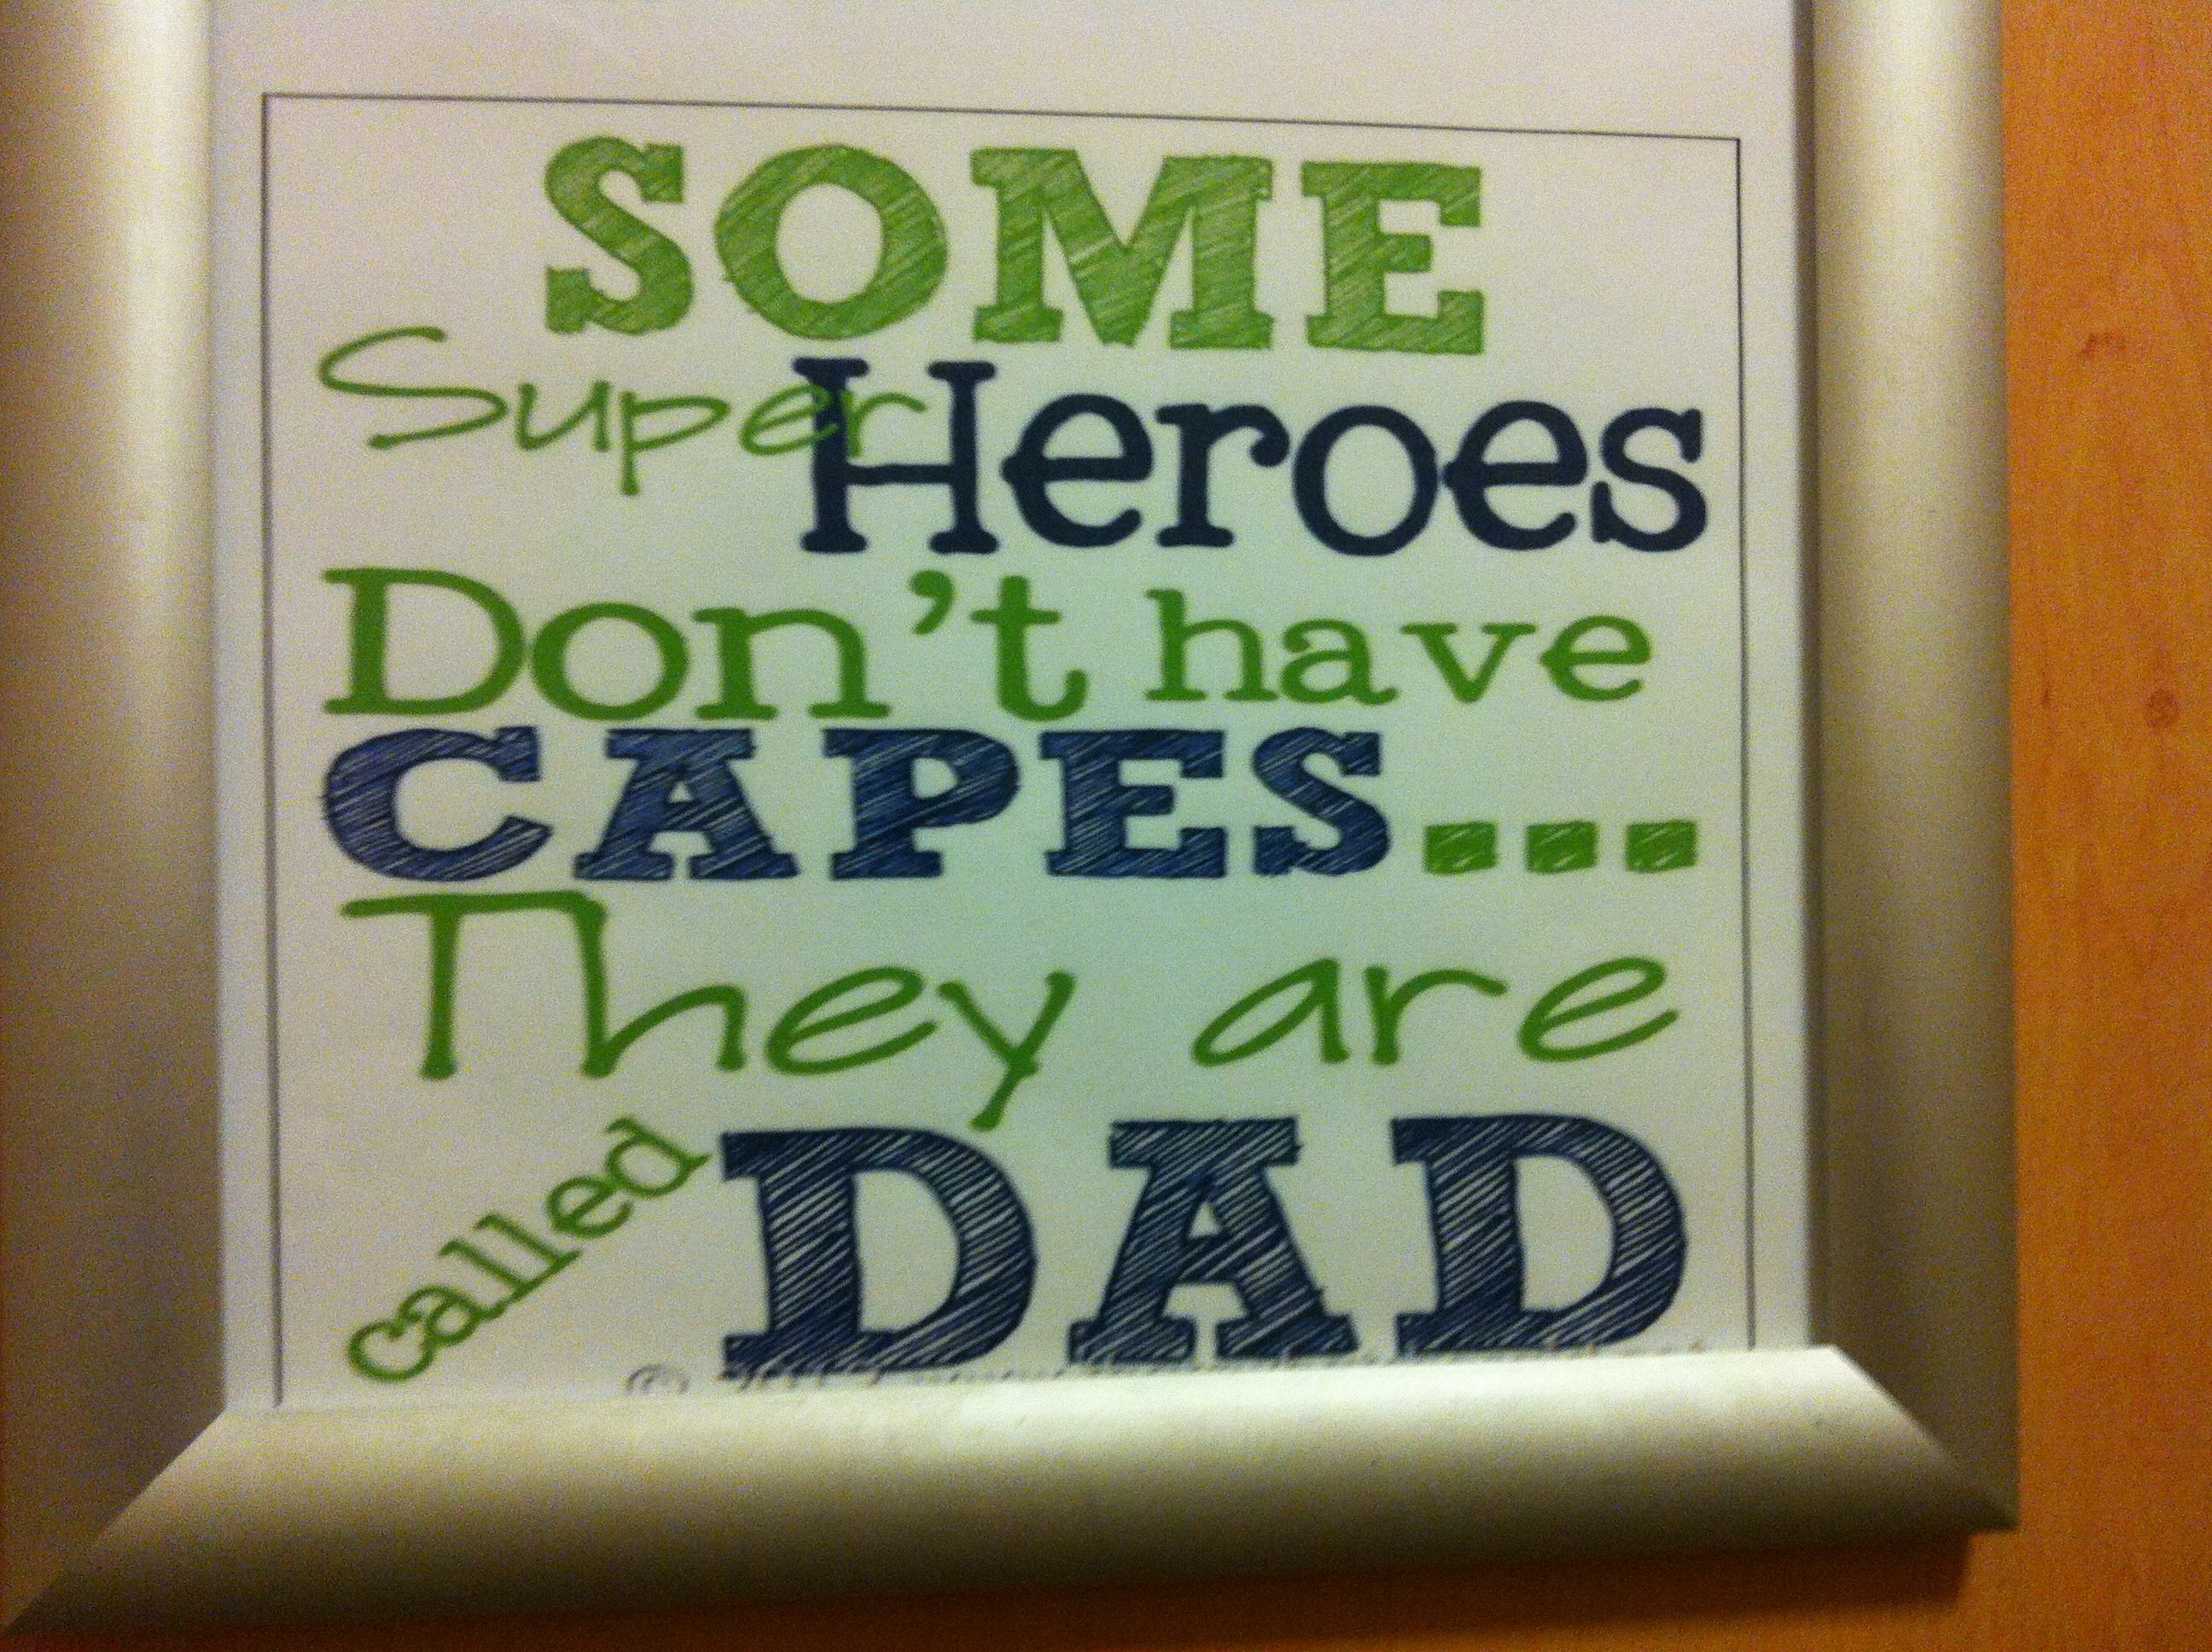 Could use this to inspire something for Fathers day gift/ card